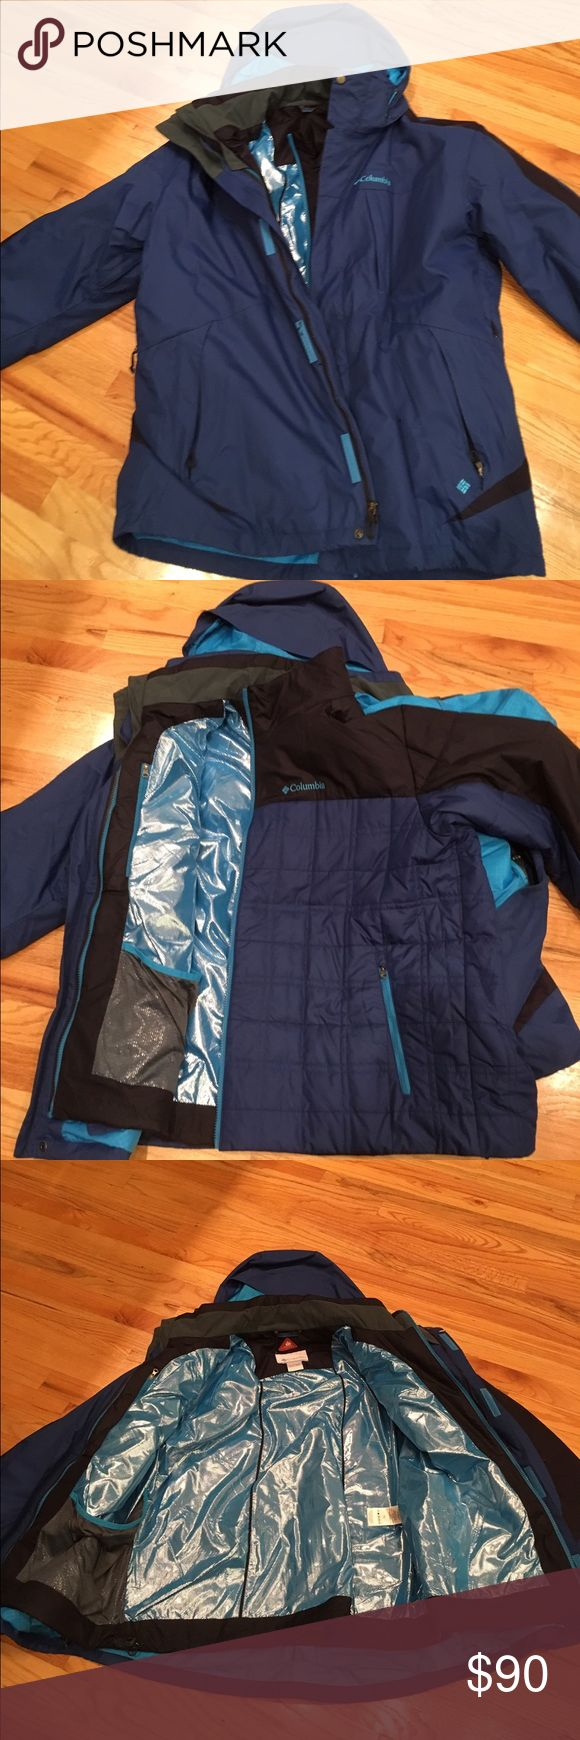 COLUMBIA Thermal Comfort Omniheat. Interchange Double lined coat. Also reversible. Brand new without tags. Like having 2 coats in one. Columbia Jackets & Coats